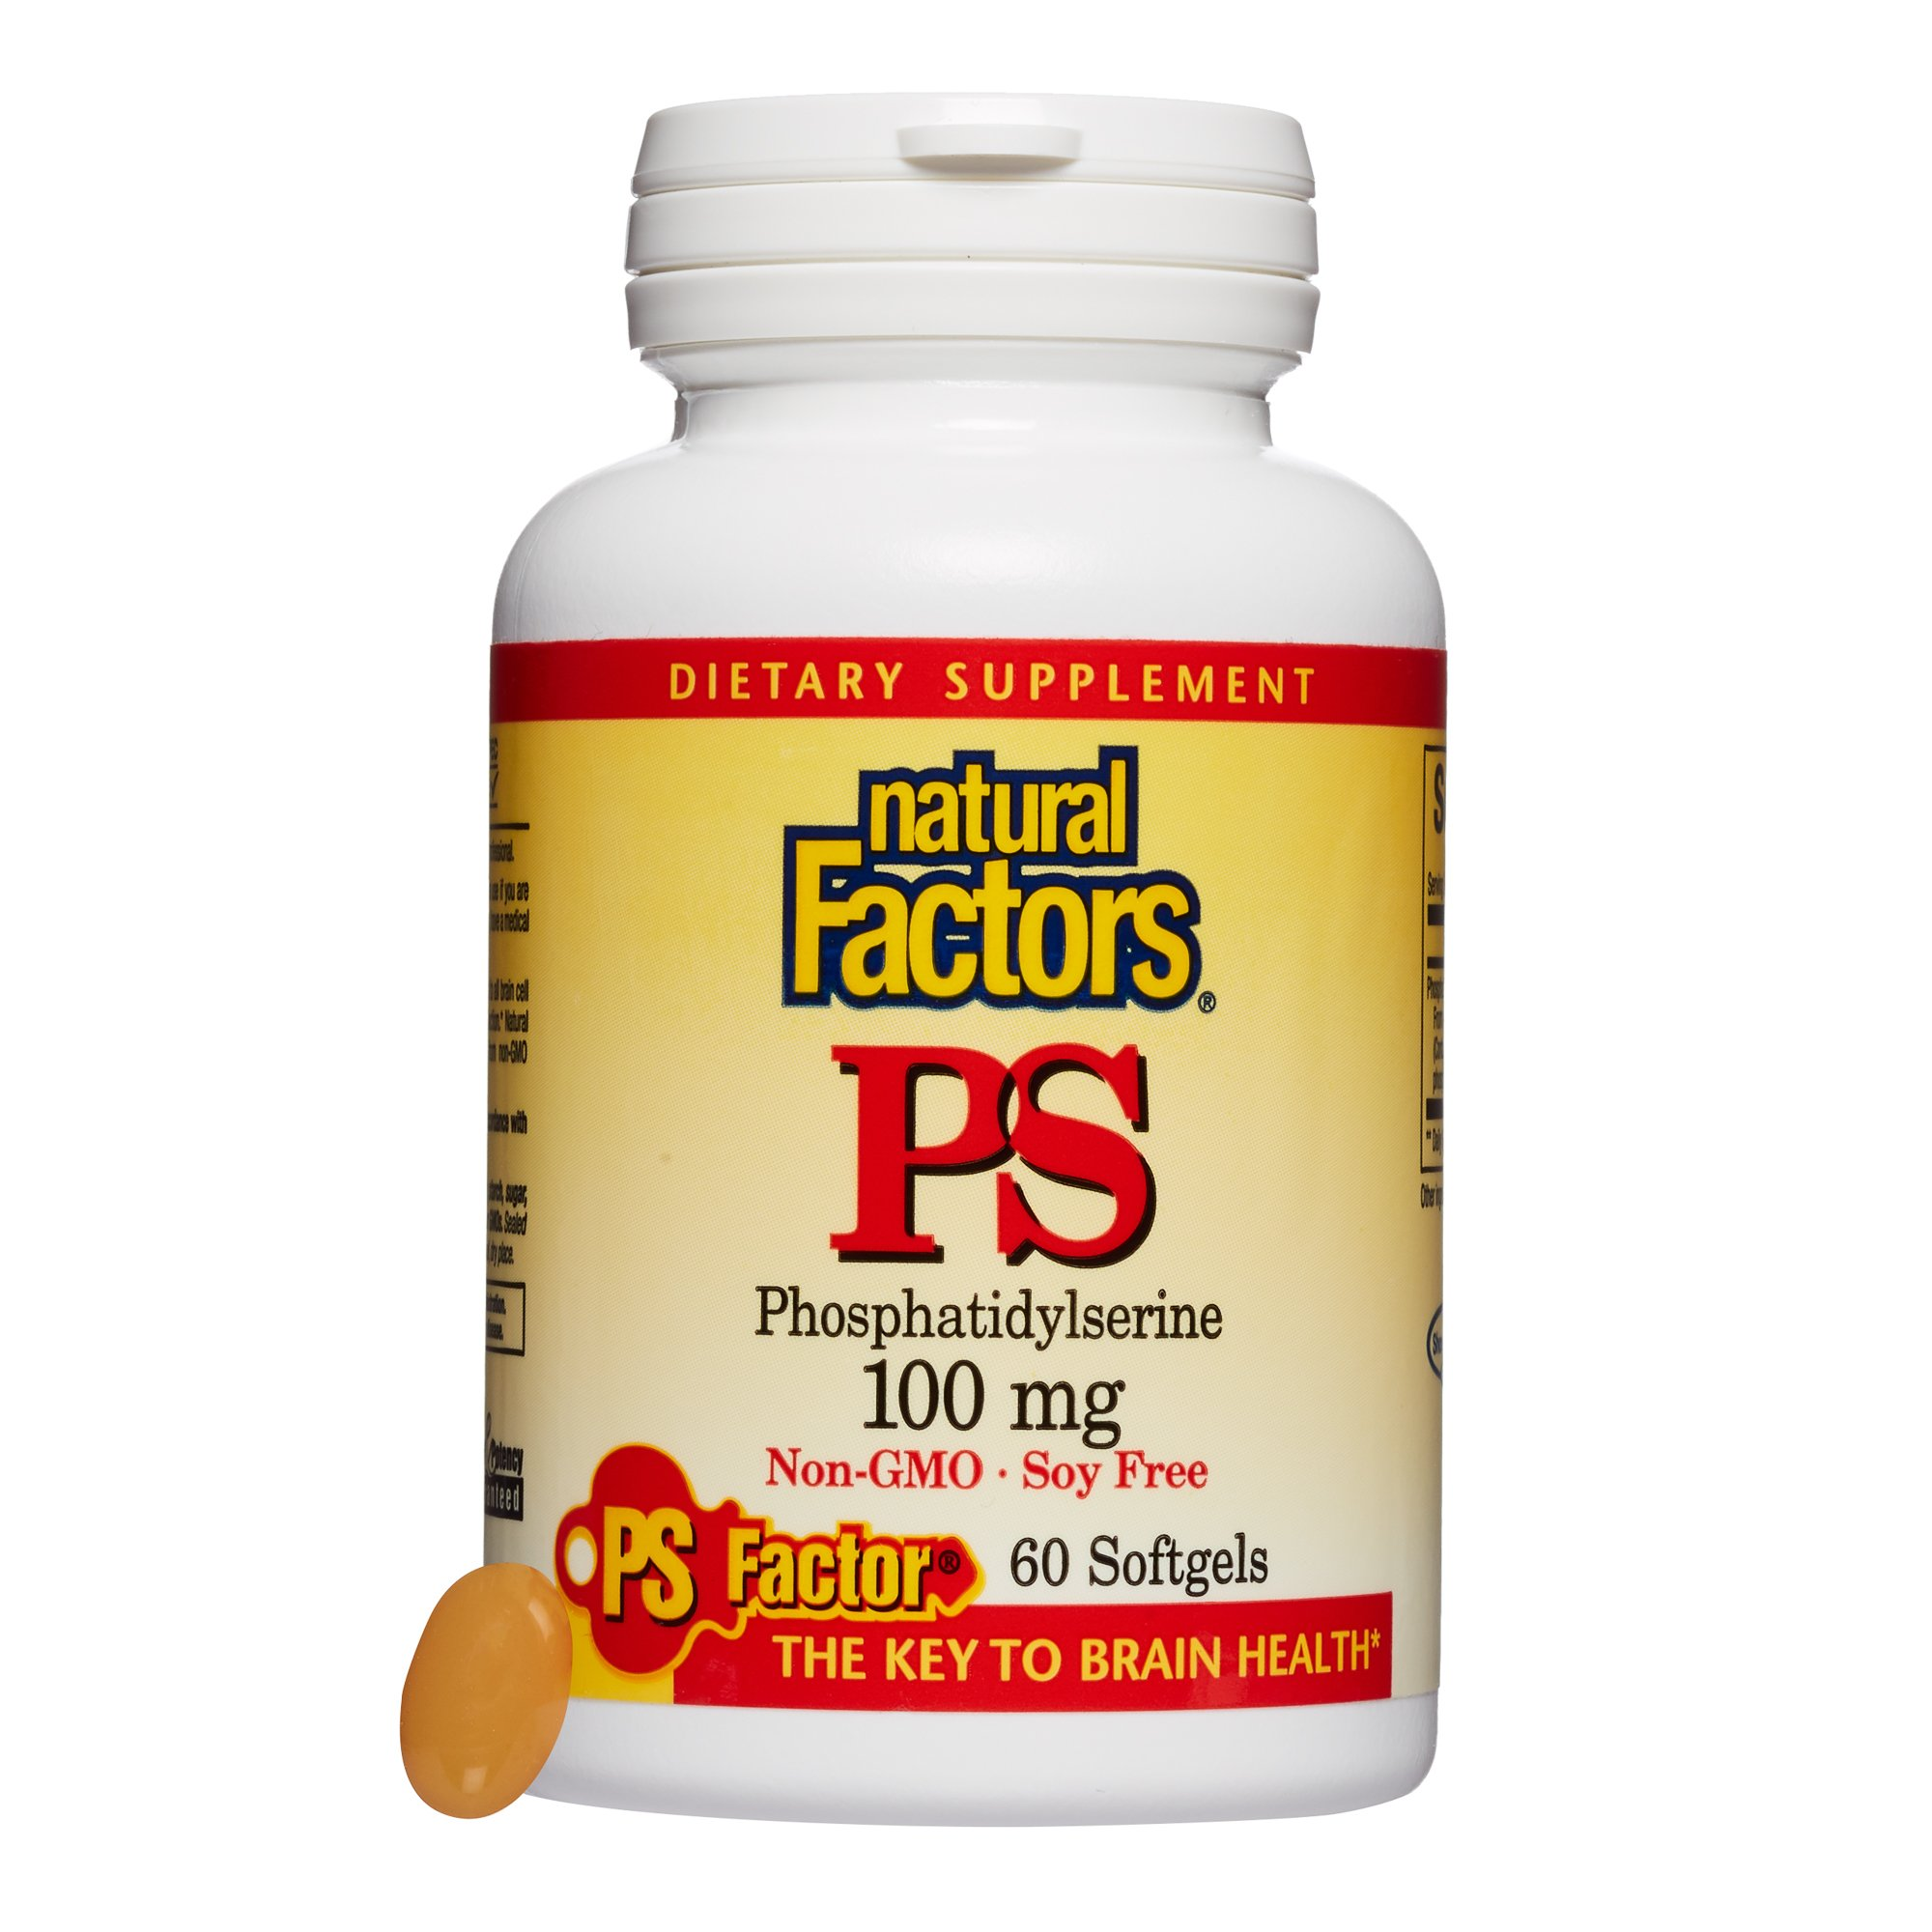 Natural Factors, PhosphatidylSerine (PS) 100 mg, Supports Healthy Brain Function with Non-GMO Sunflower Lecithin, 60 softgels (60 servings) by Natural Factors